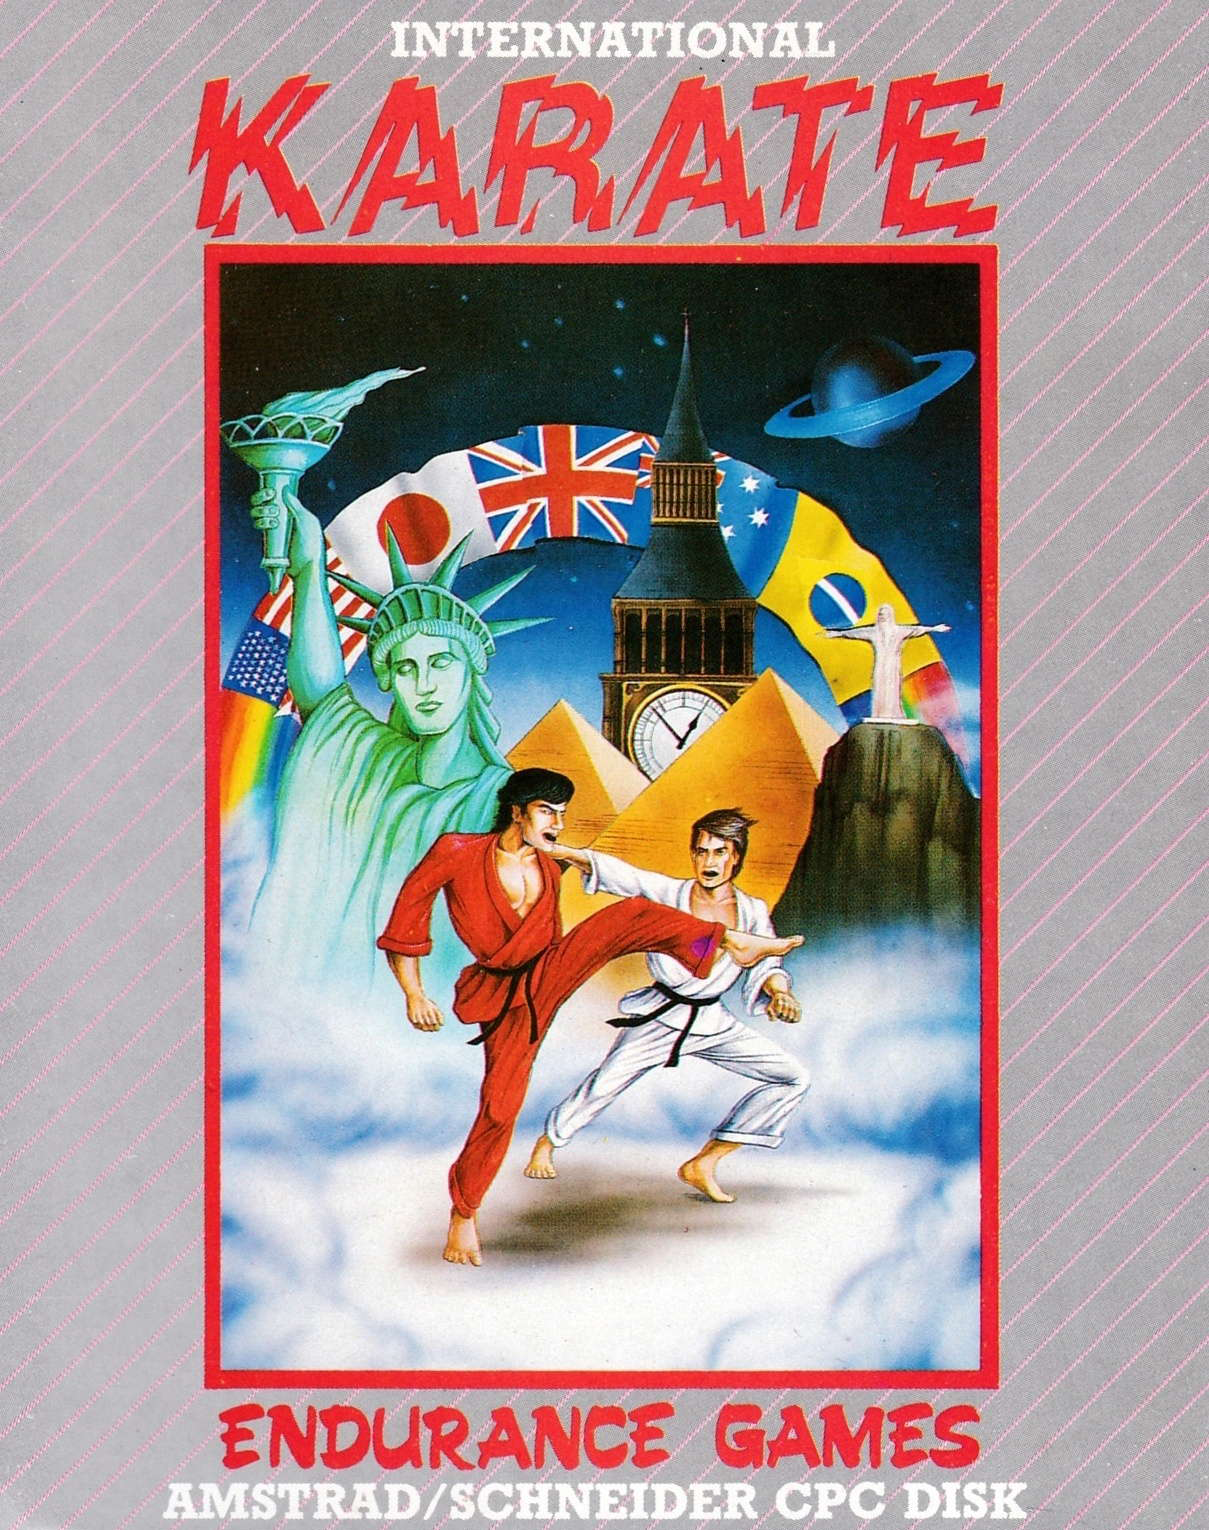 cover of the Amstrad CPC game International Karate  by GameBase CPC